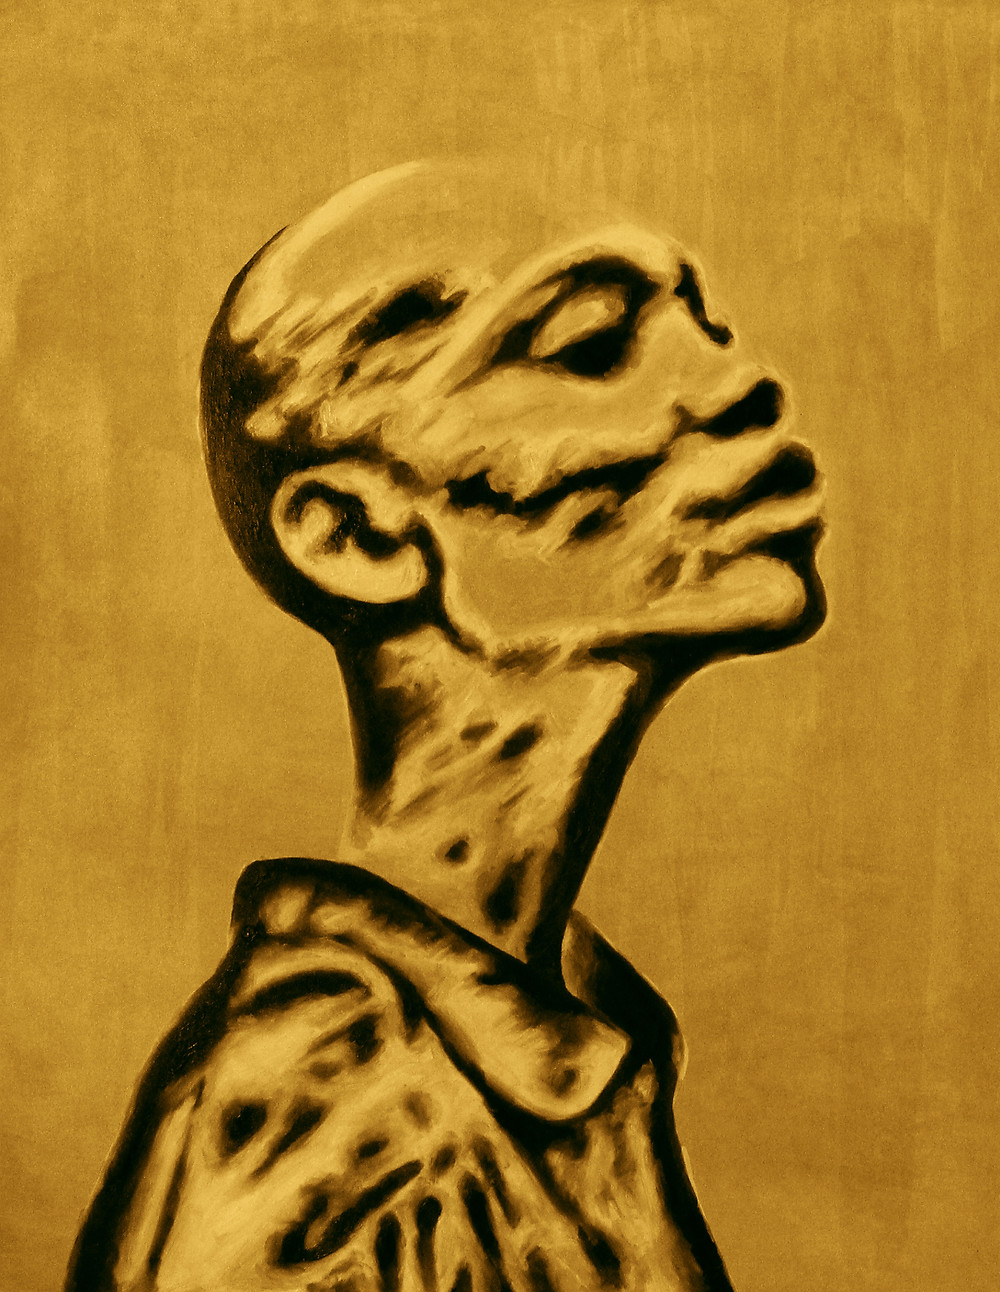 "African Soul Vintage Fine Art Print/ Size: 60 cm x 78 cm/ Year 2019 This fine art print is based on a painting by Amber Rose Olivier entitled ""African Soul 01."" African Soul is an expressionistic Portrait. This unique piece shows off the rather beautiful features of an African woman portrayed in an elegant yet airy manner. The background is an old wall somewhere in the streets of her city that has aged delicately over time. This fine art print is a limited edition run of only 30 prints and 1 of 2 colour editions."